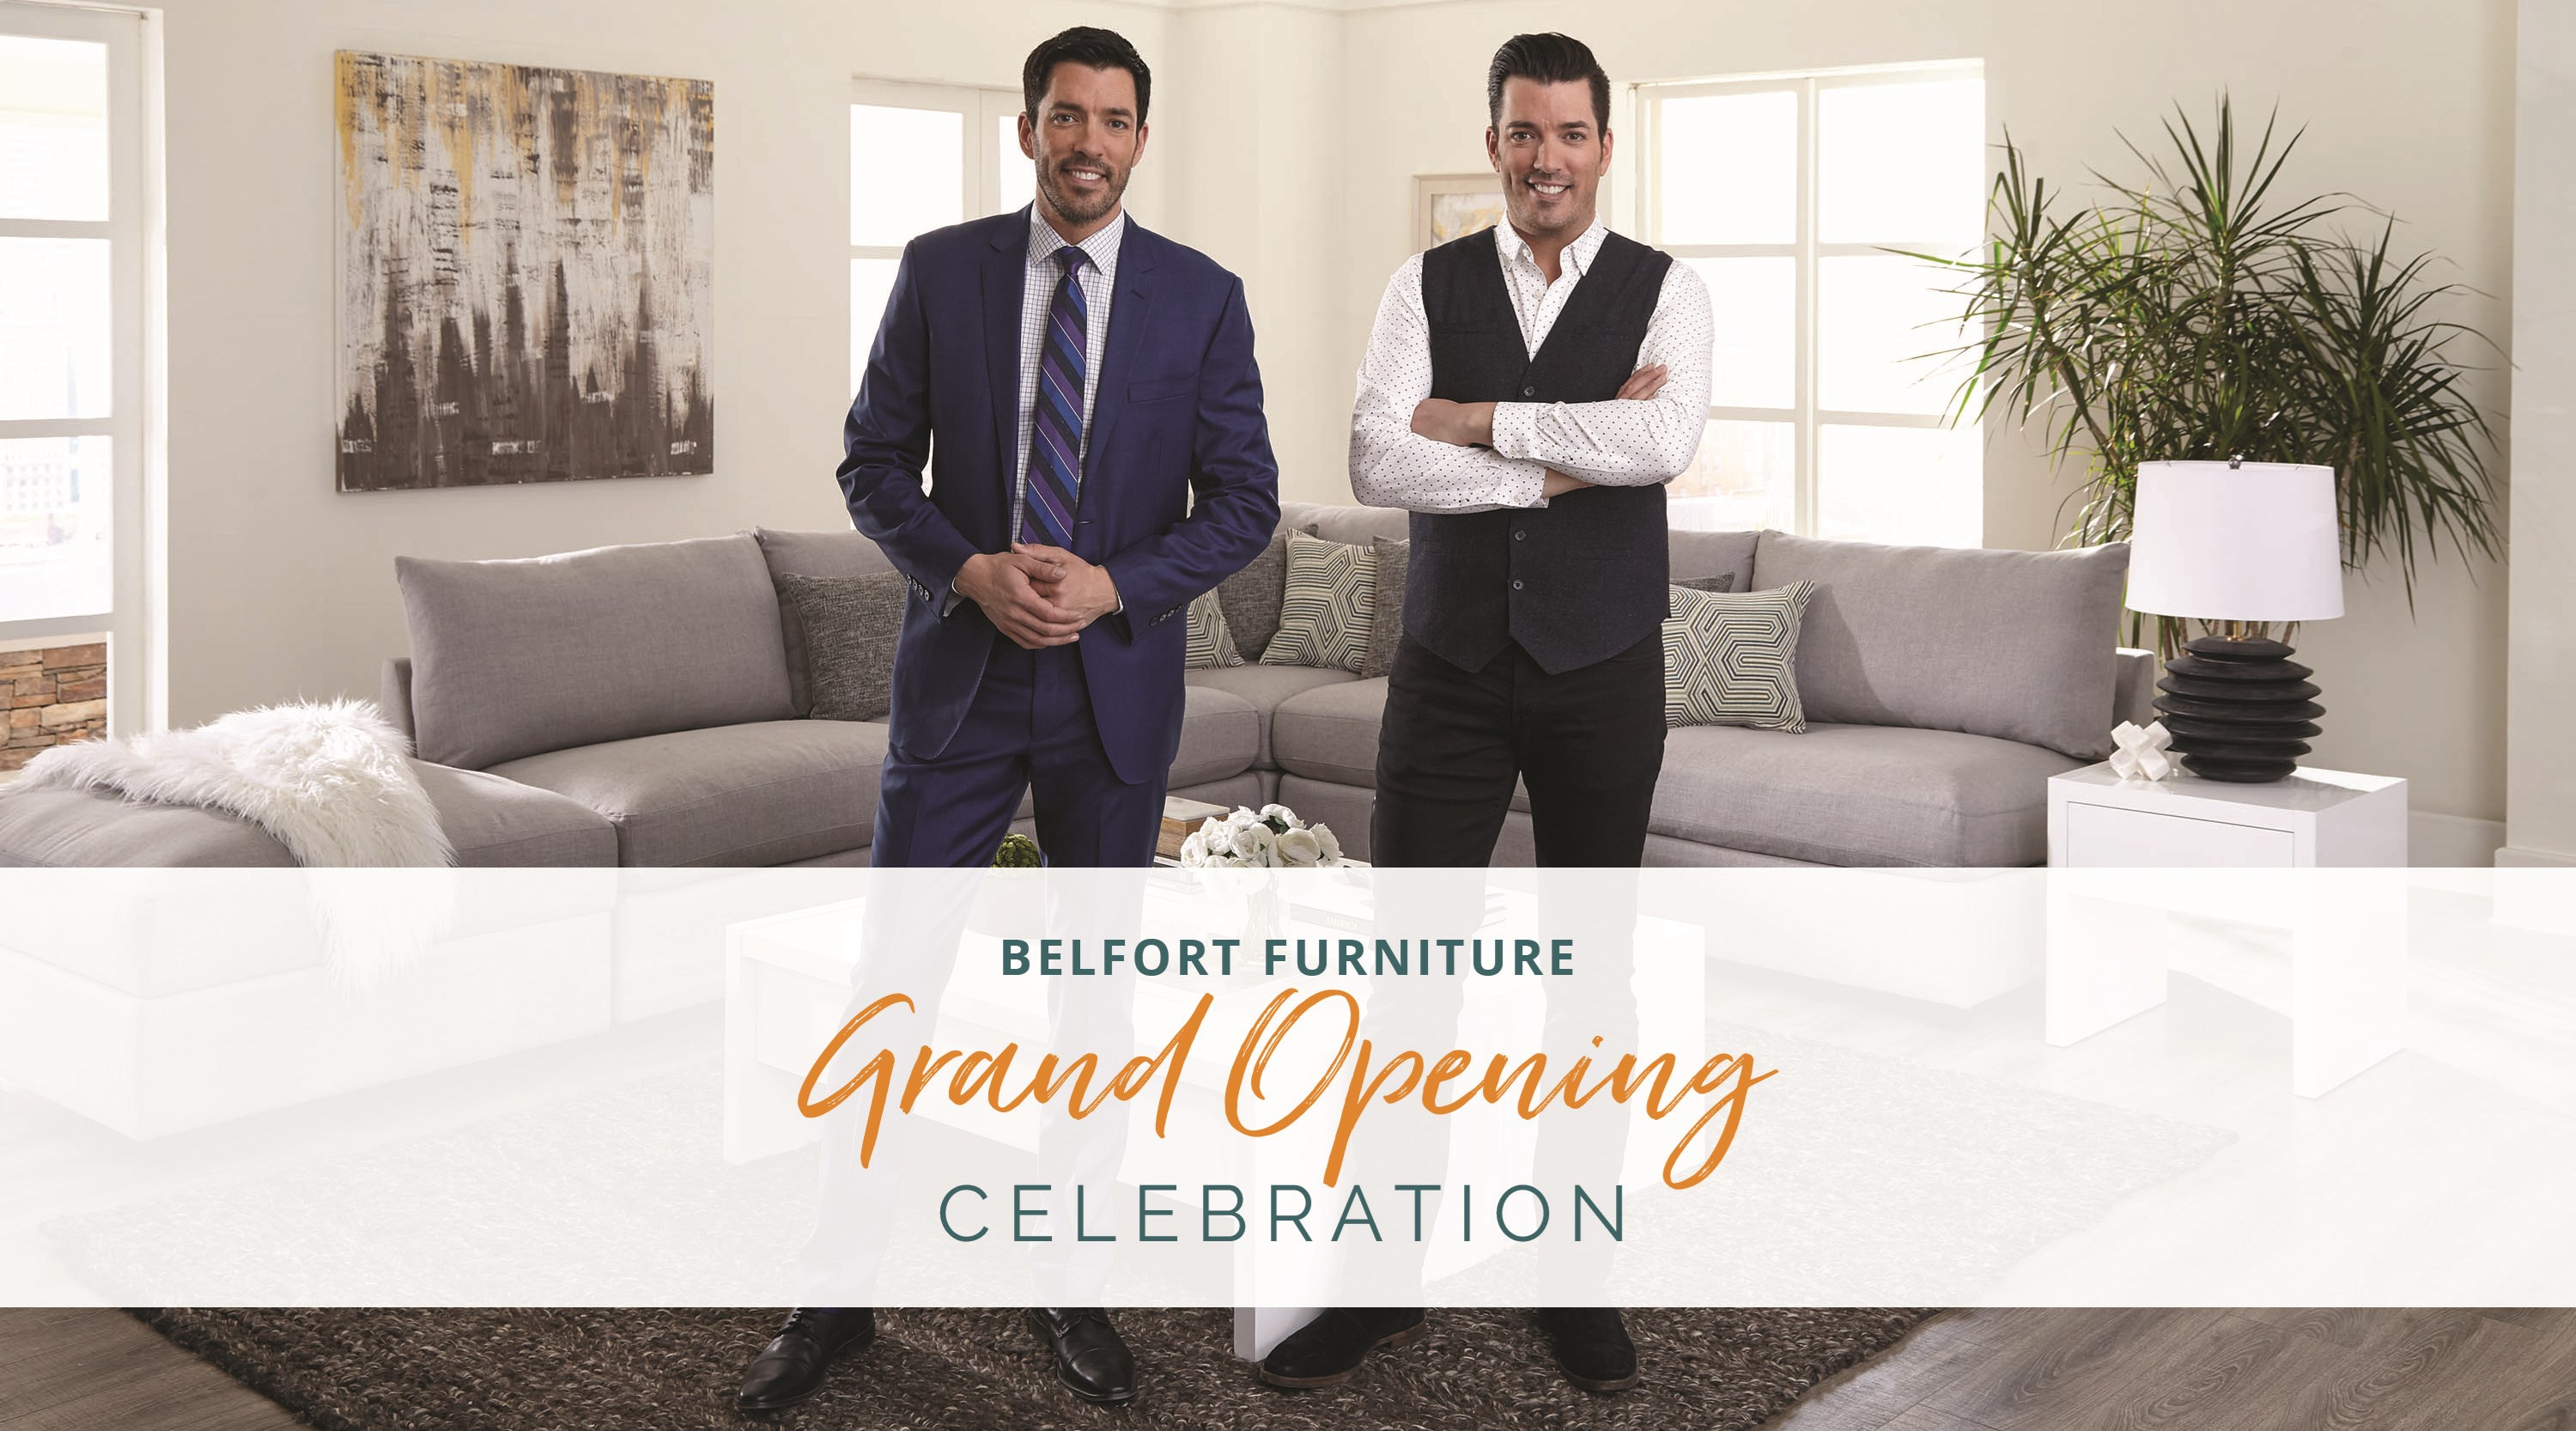 Belfort Furniture Grand Opening Celebration With Drew And Jonathan Scott